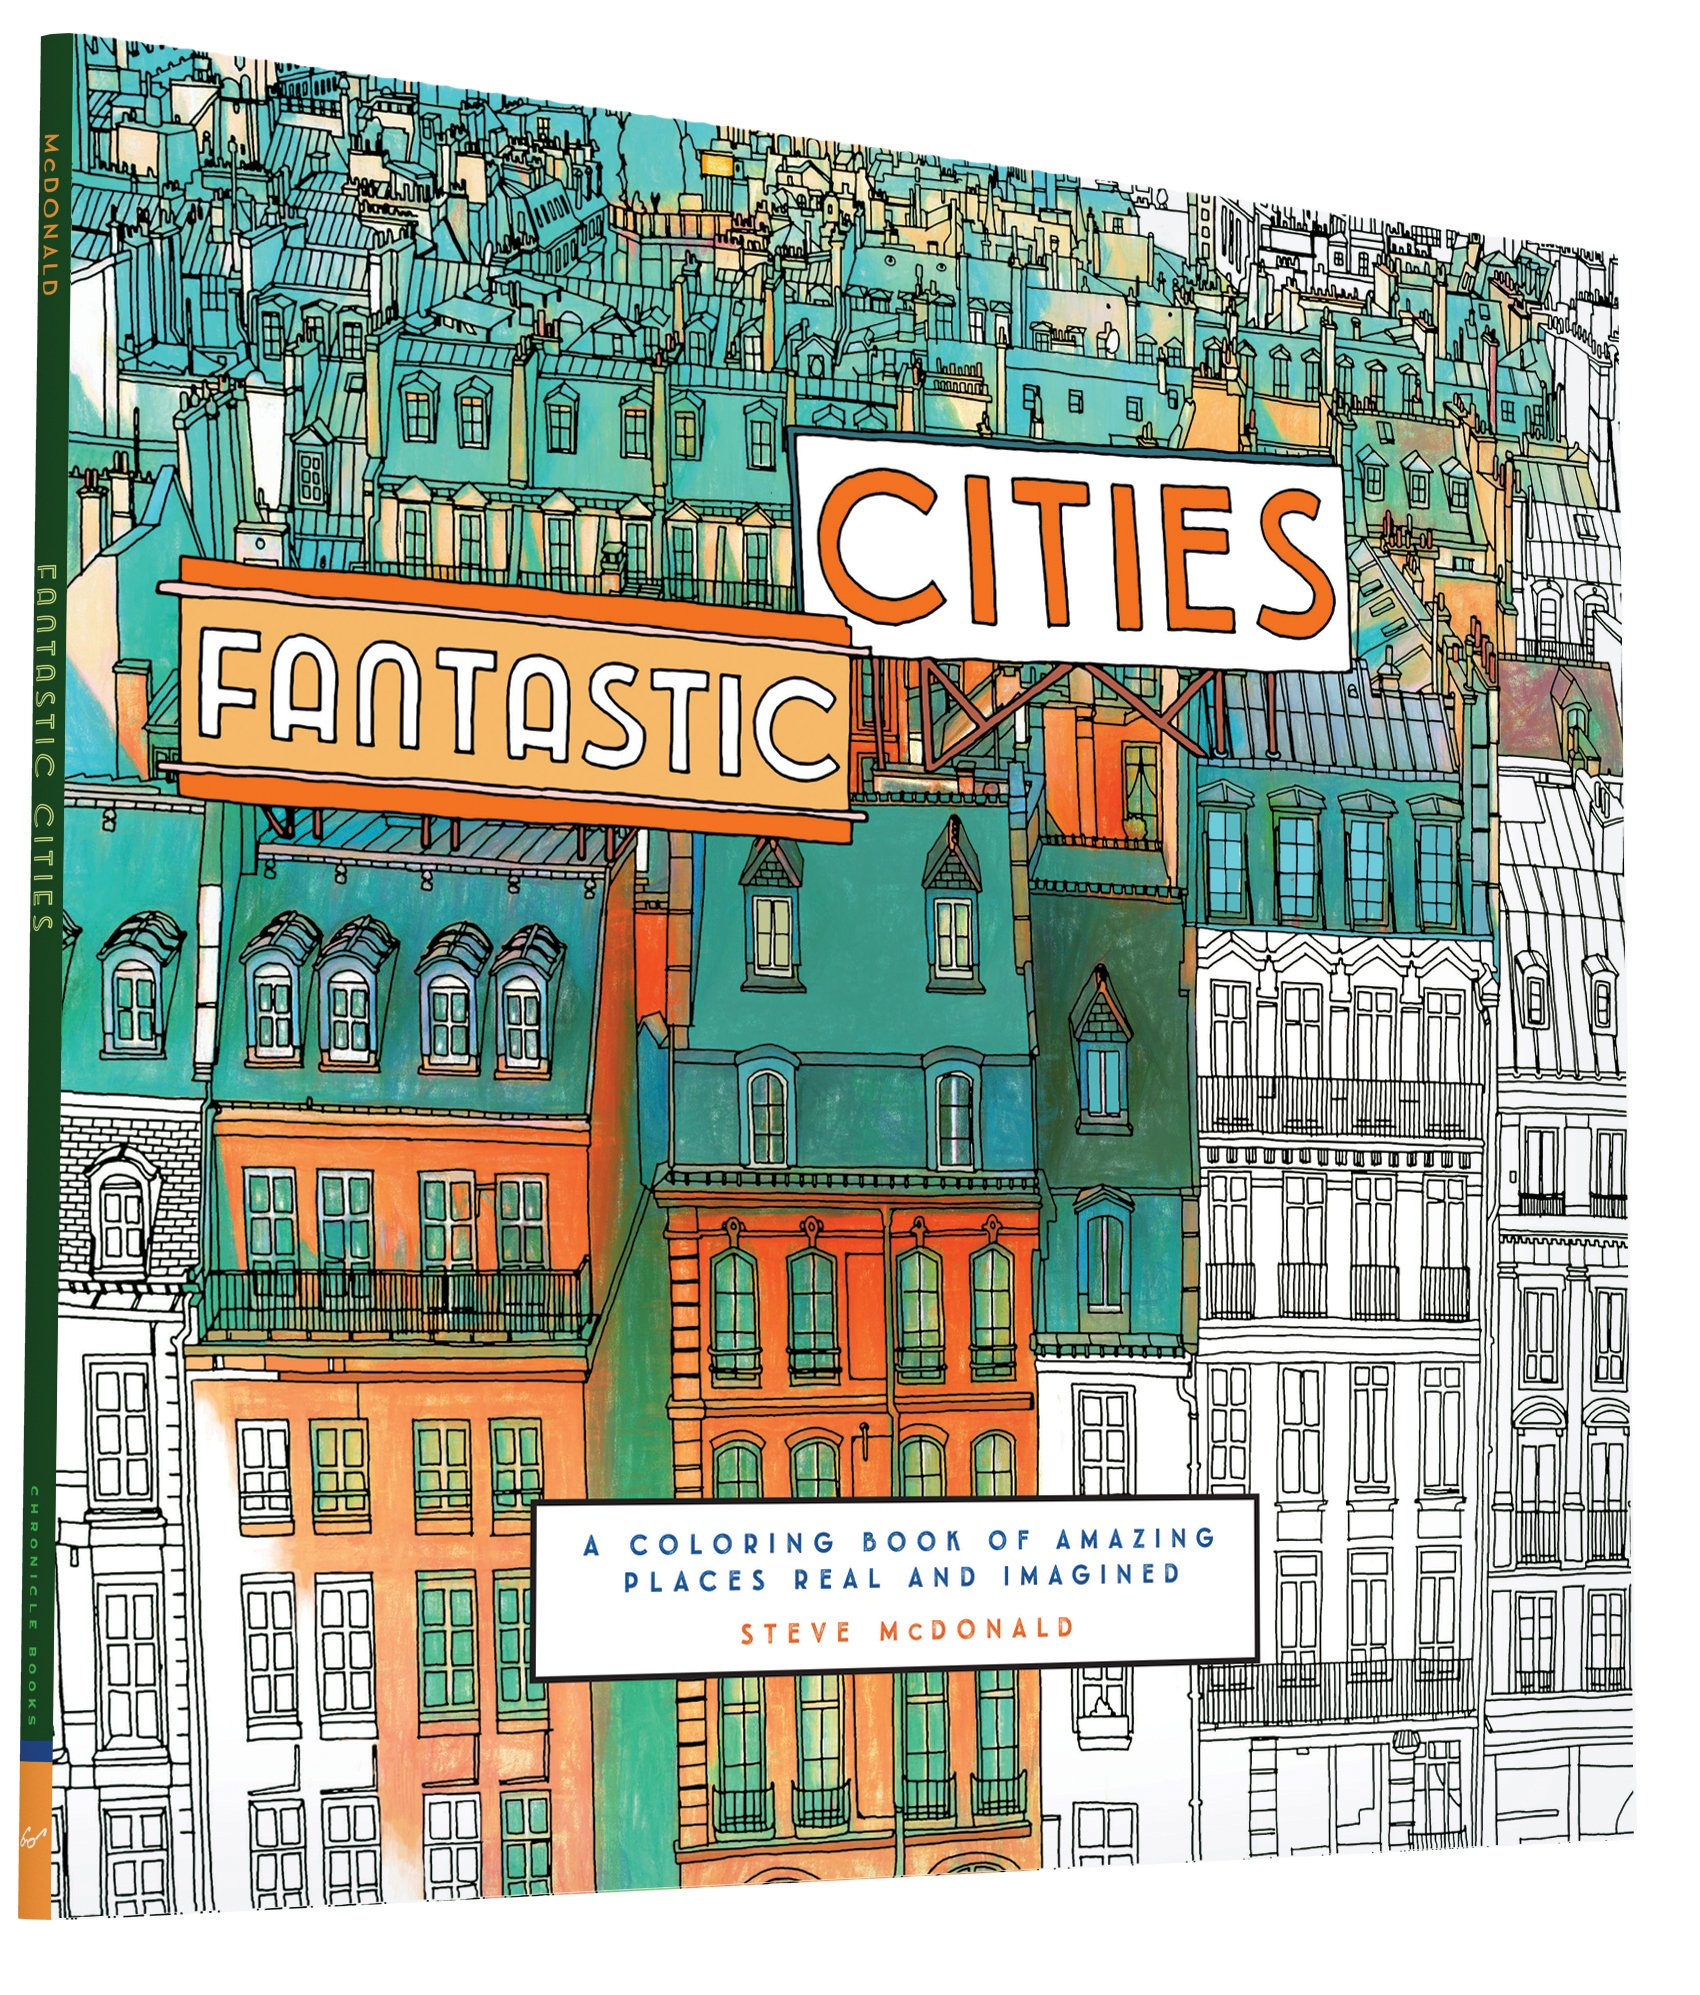 Fantastic Cities Features The Amazing Line Art By Steve McDonald Of Around World I Love Architecture Drawings And Aerial